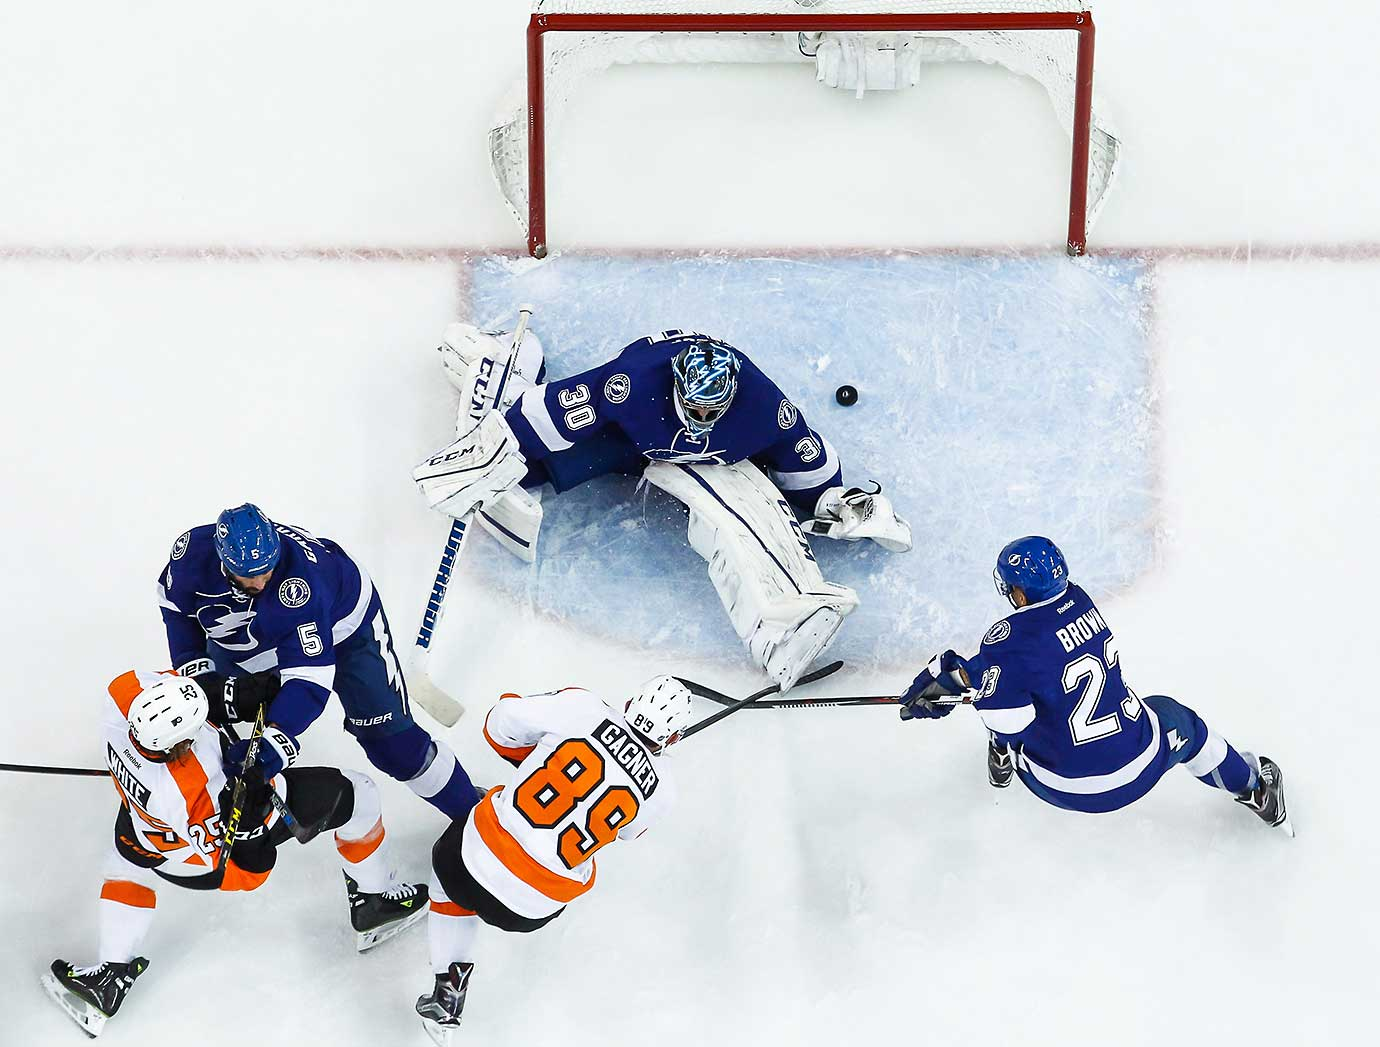 Sam Gagner of the Philadelphia Flyers scores against goalie Ben Bishop of the Tampa Bay Lightning.